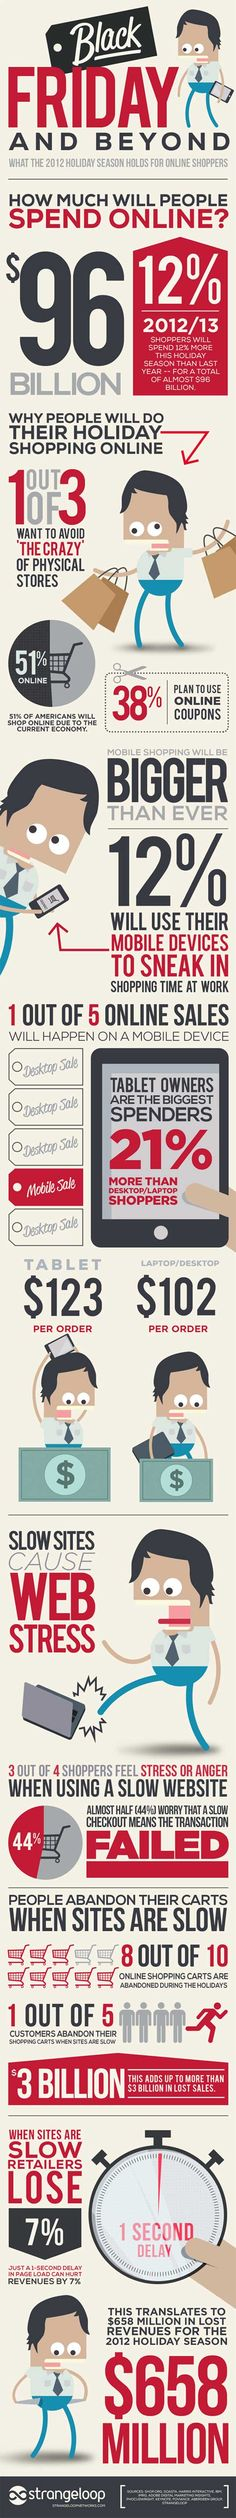 Black Friday and Beyond: What the 2012 season holds for online shoppers Infographic Marketing Data, Inbound Marketing, Marketing Digital, Internet Marketing, Online Marketing, Marketing Ideas, Business Marketing, Content Marketing, Black Friday Ads